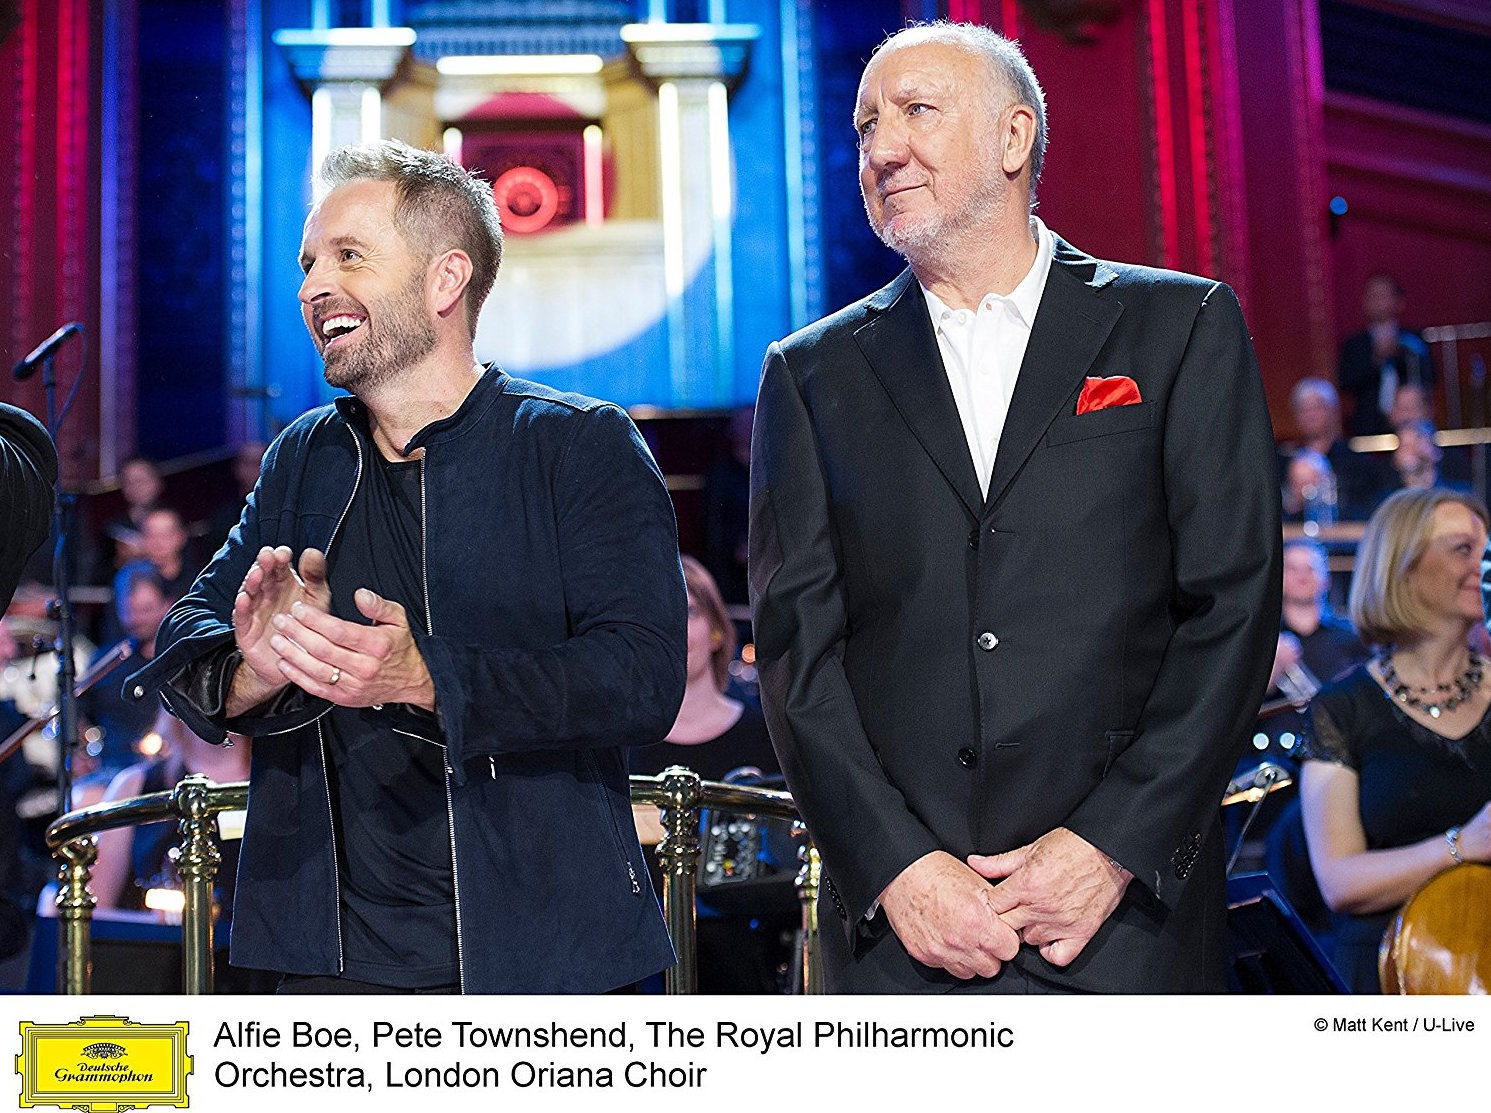 Pete Townshend bringing Classic Quadrophenia to the US